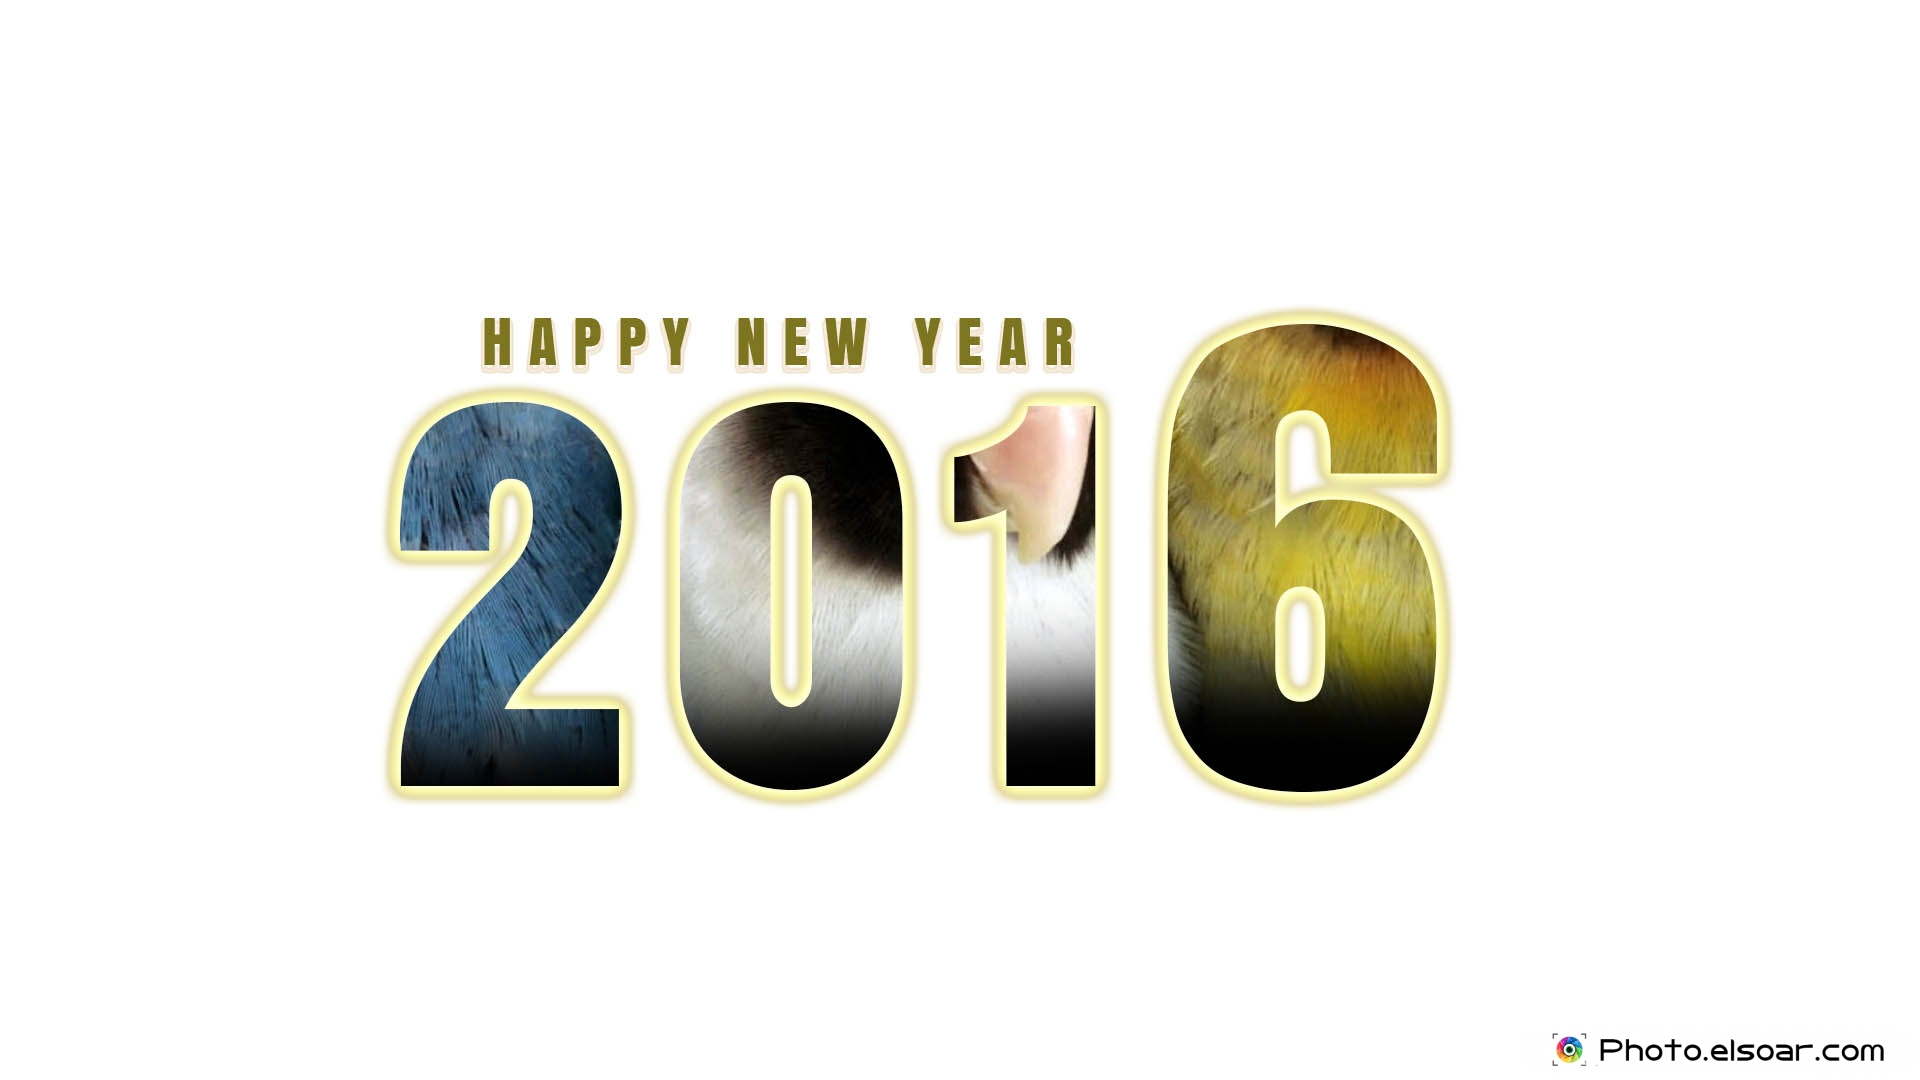 Happy New Year 2016 Images Wallpapers And Greeting Cards 1920x1080